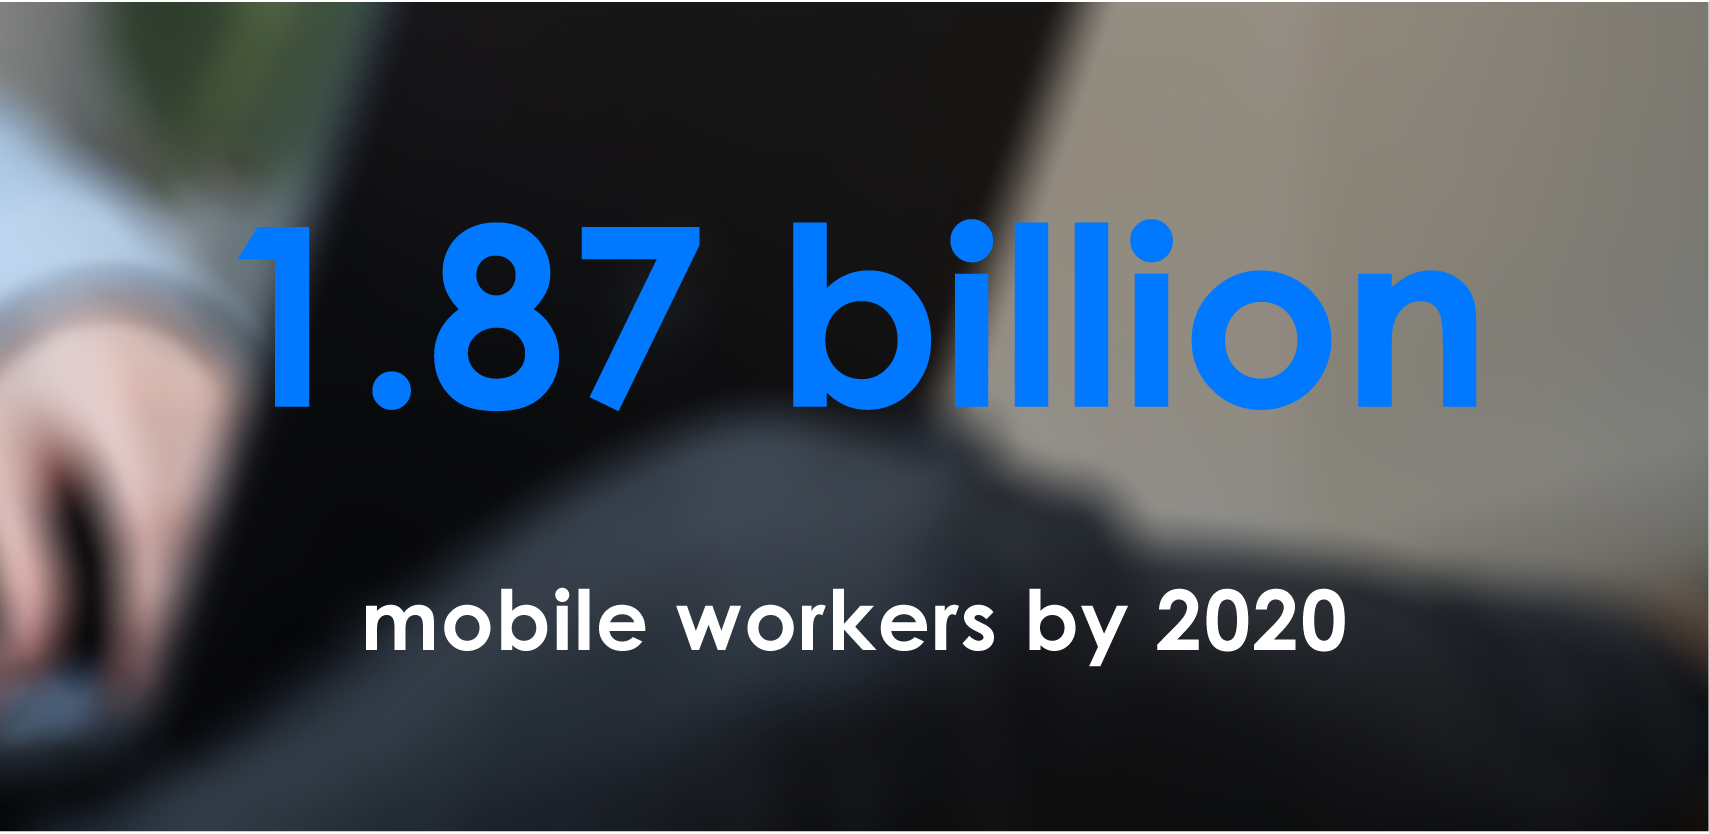 Blogpost-mobile-workplace-2020-01-01